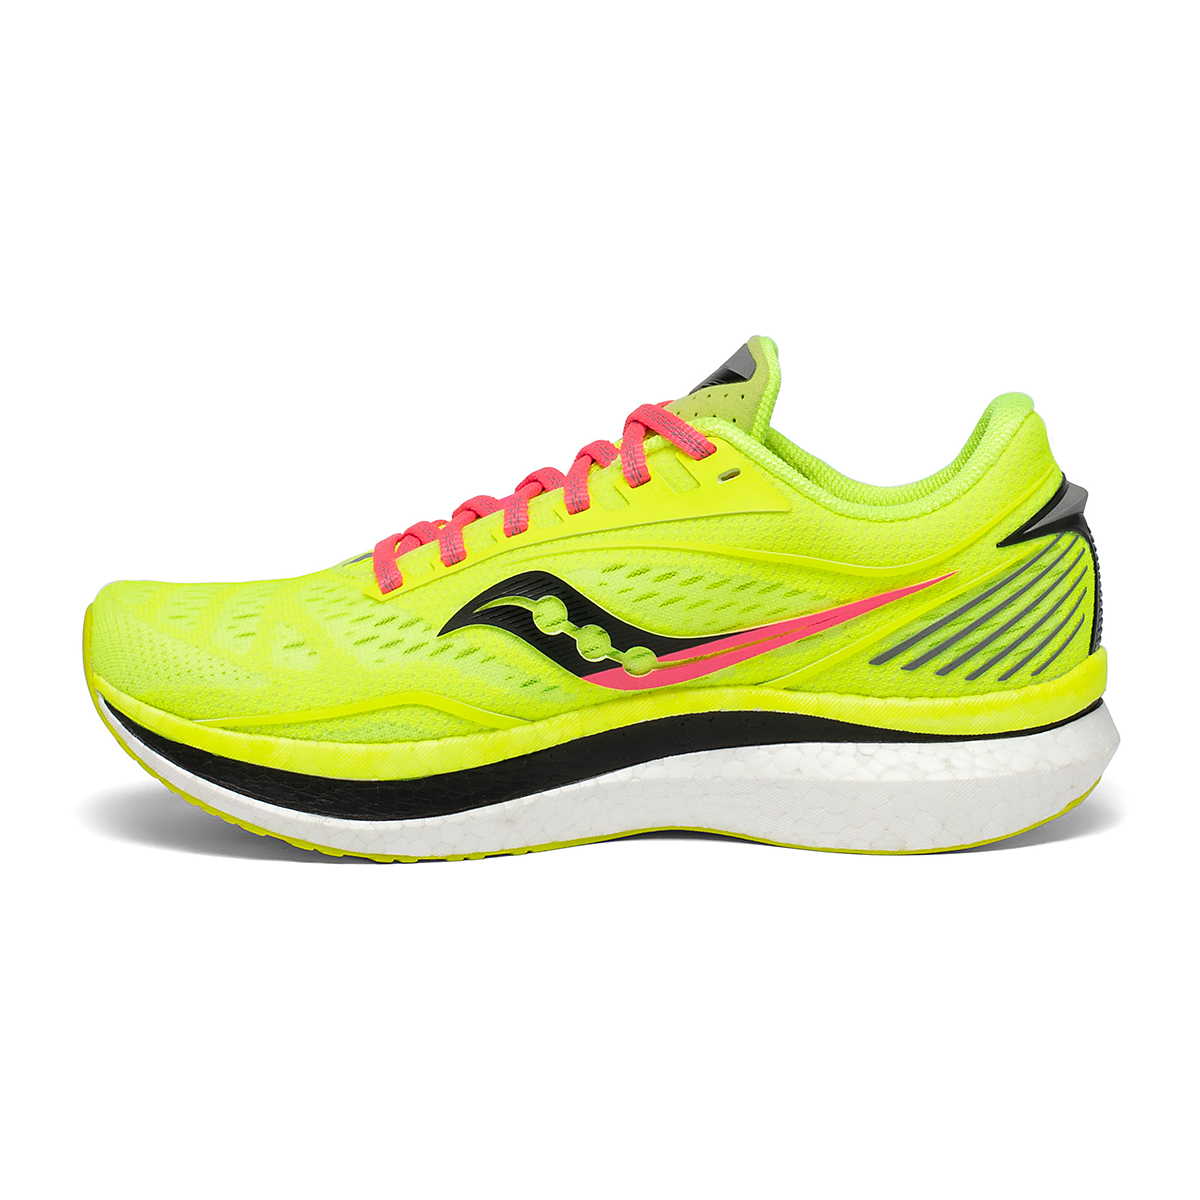 Women's Saucony VIZIPRO Speed Endorphin Speed Running Shoe - Color: Citron - Size: 5 - Width: Regular, Citron, large, image 2